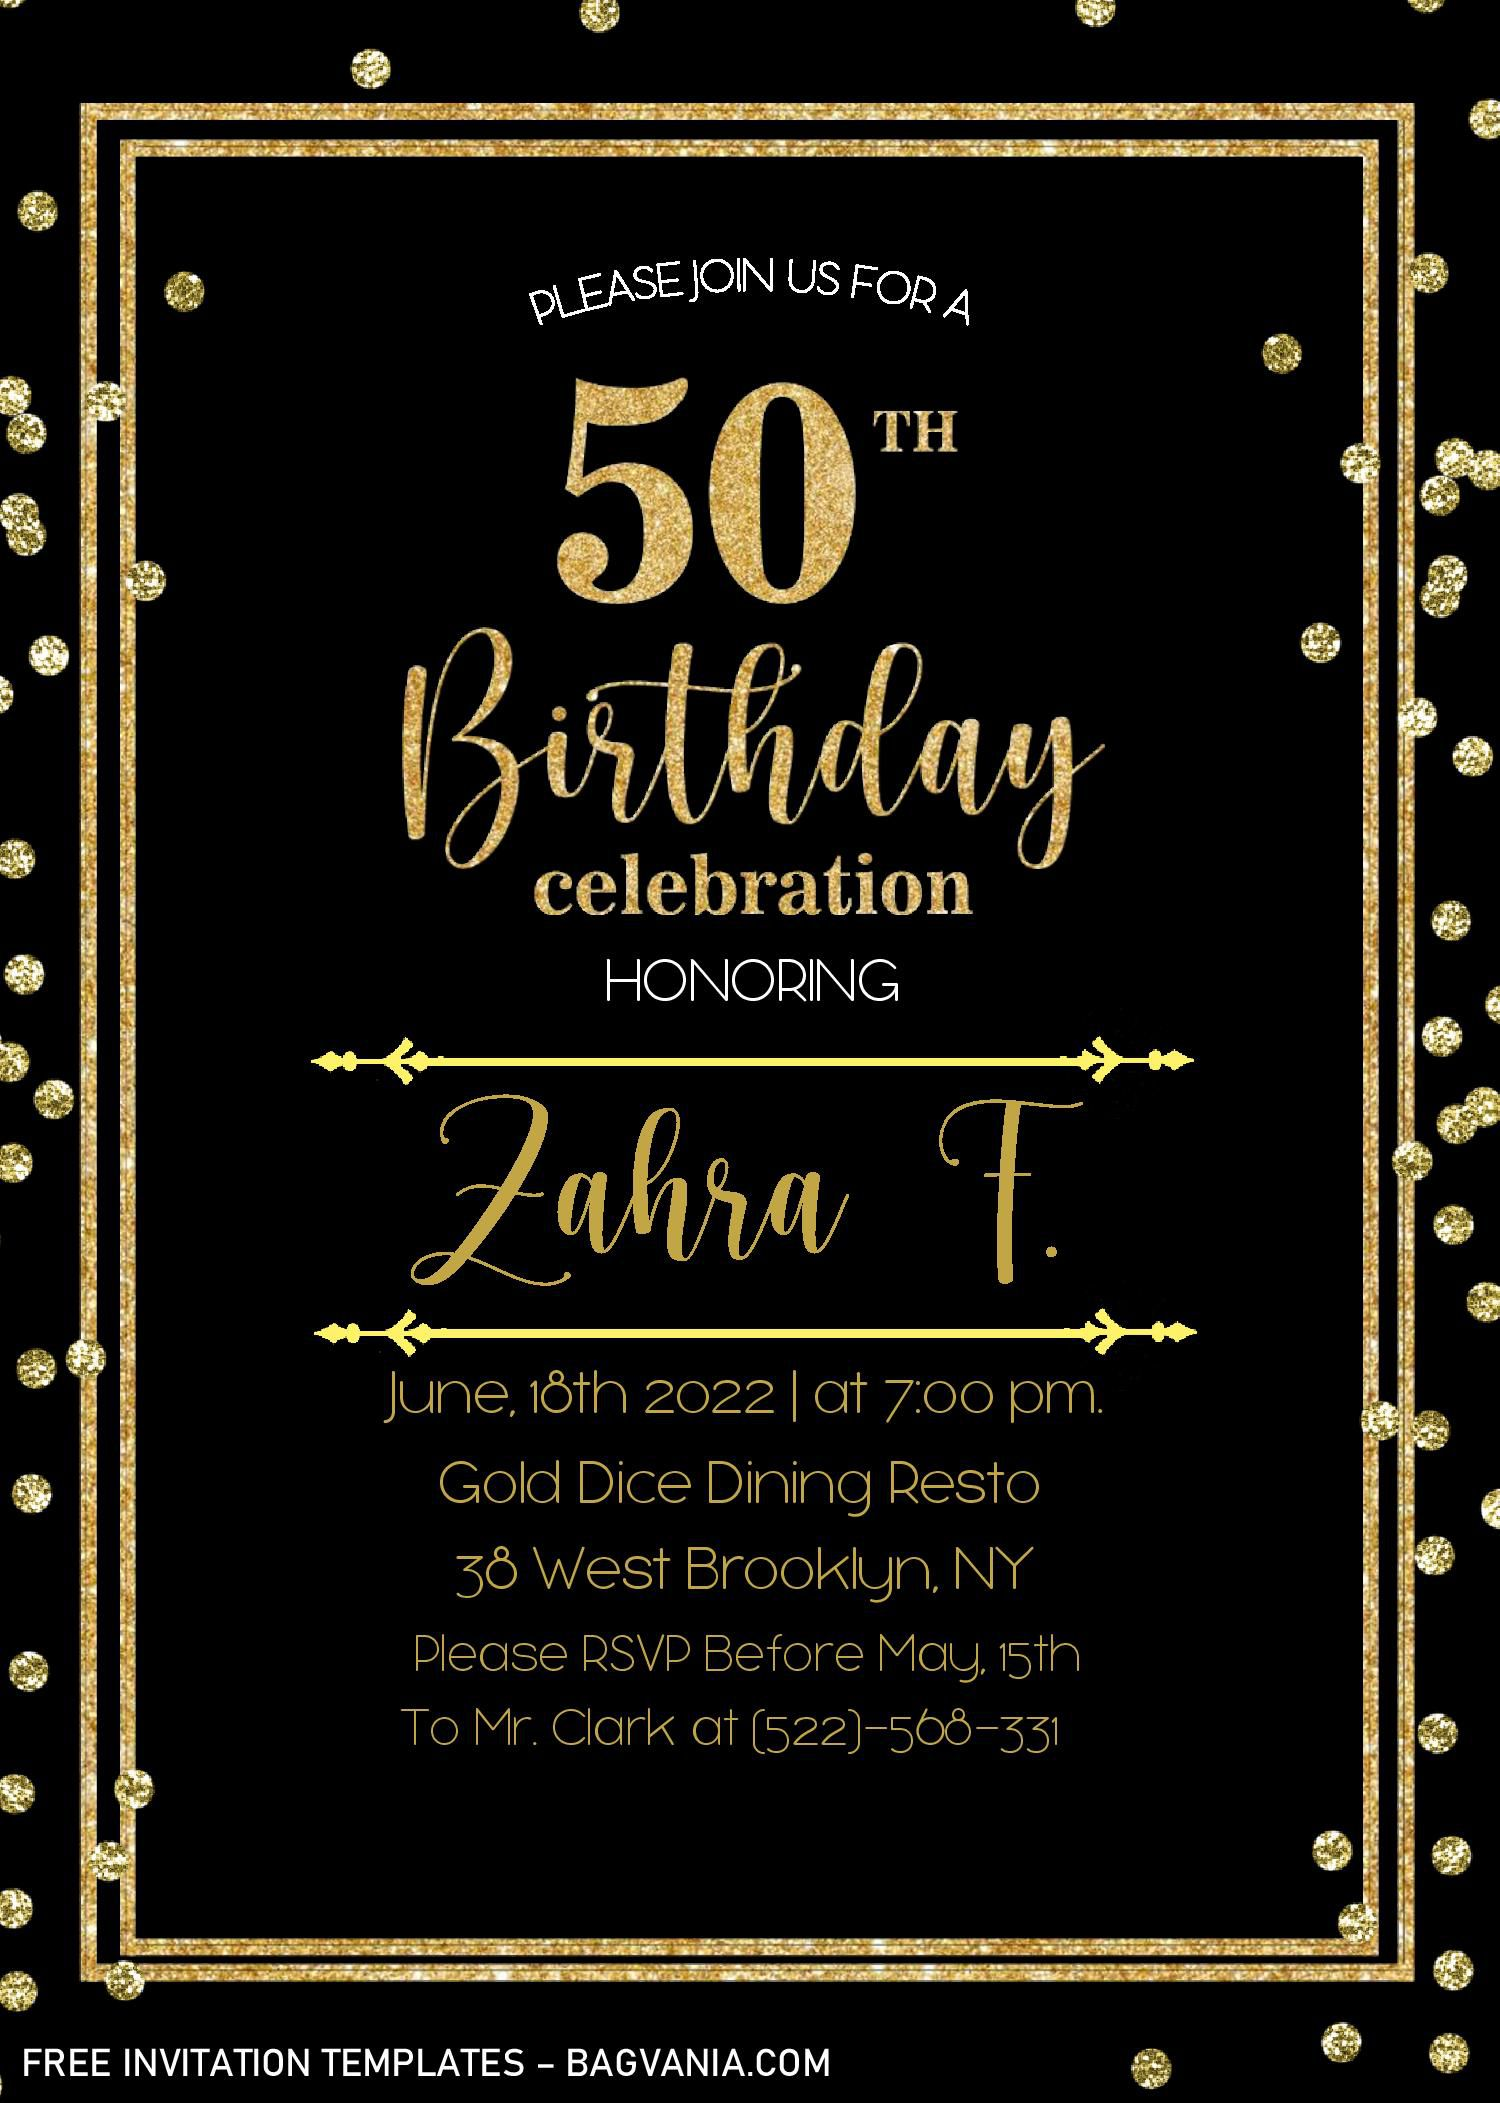 002 Striking Microsoft Word 50th Birthday Invitation Template Image  Editable Wedding AnniversaryFull